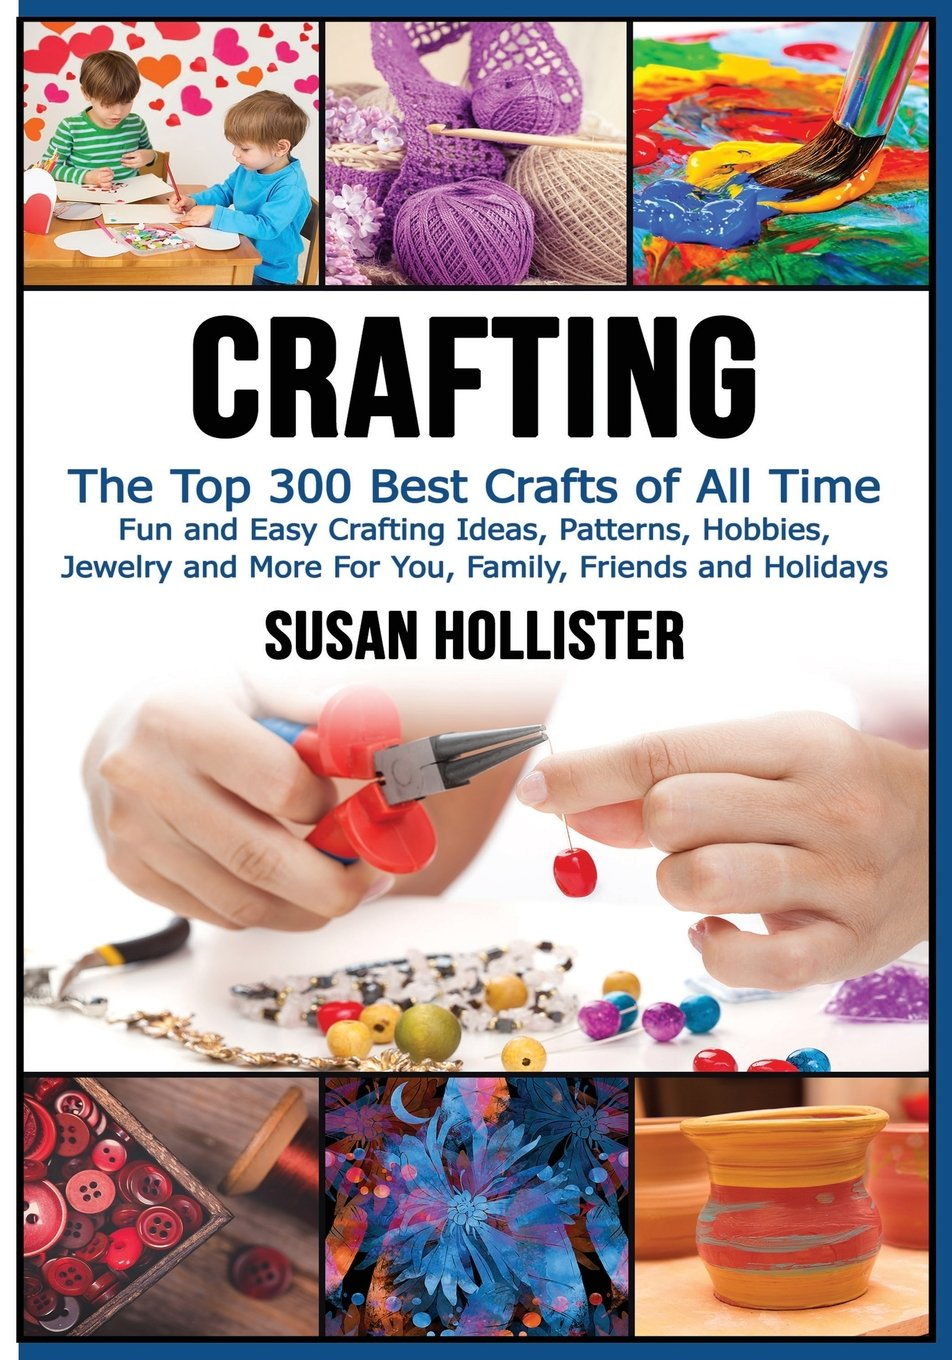 Crafting The Top 300 Best Crafts Fun And Easy Ideas Patterns Hobbies Jewelry More For You Family Friends Holidays Have